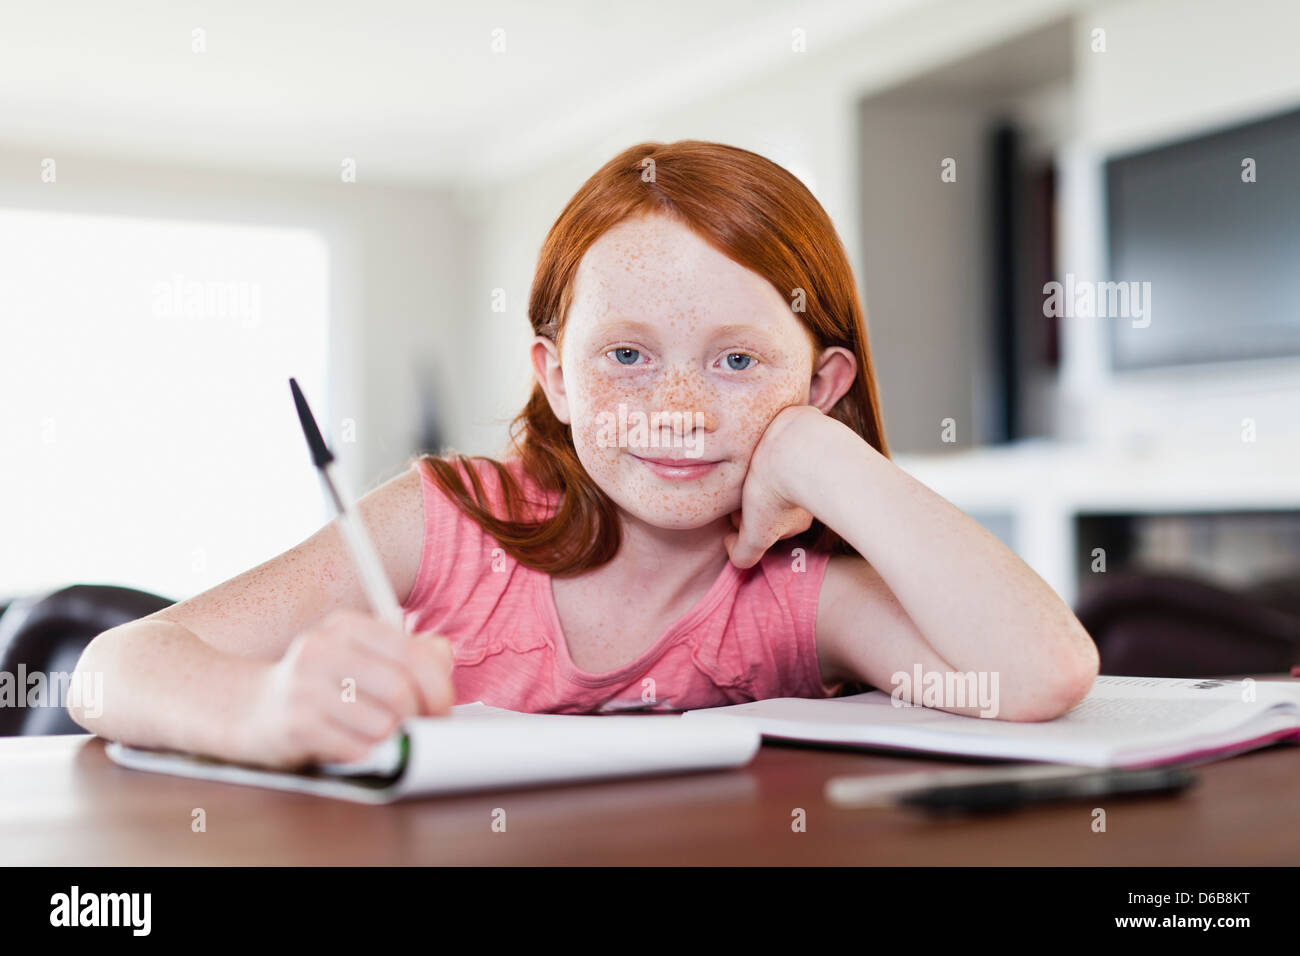 Smiling girl doing homework Photo Stock